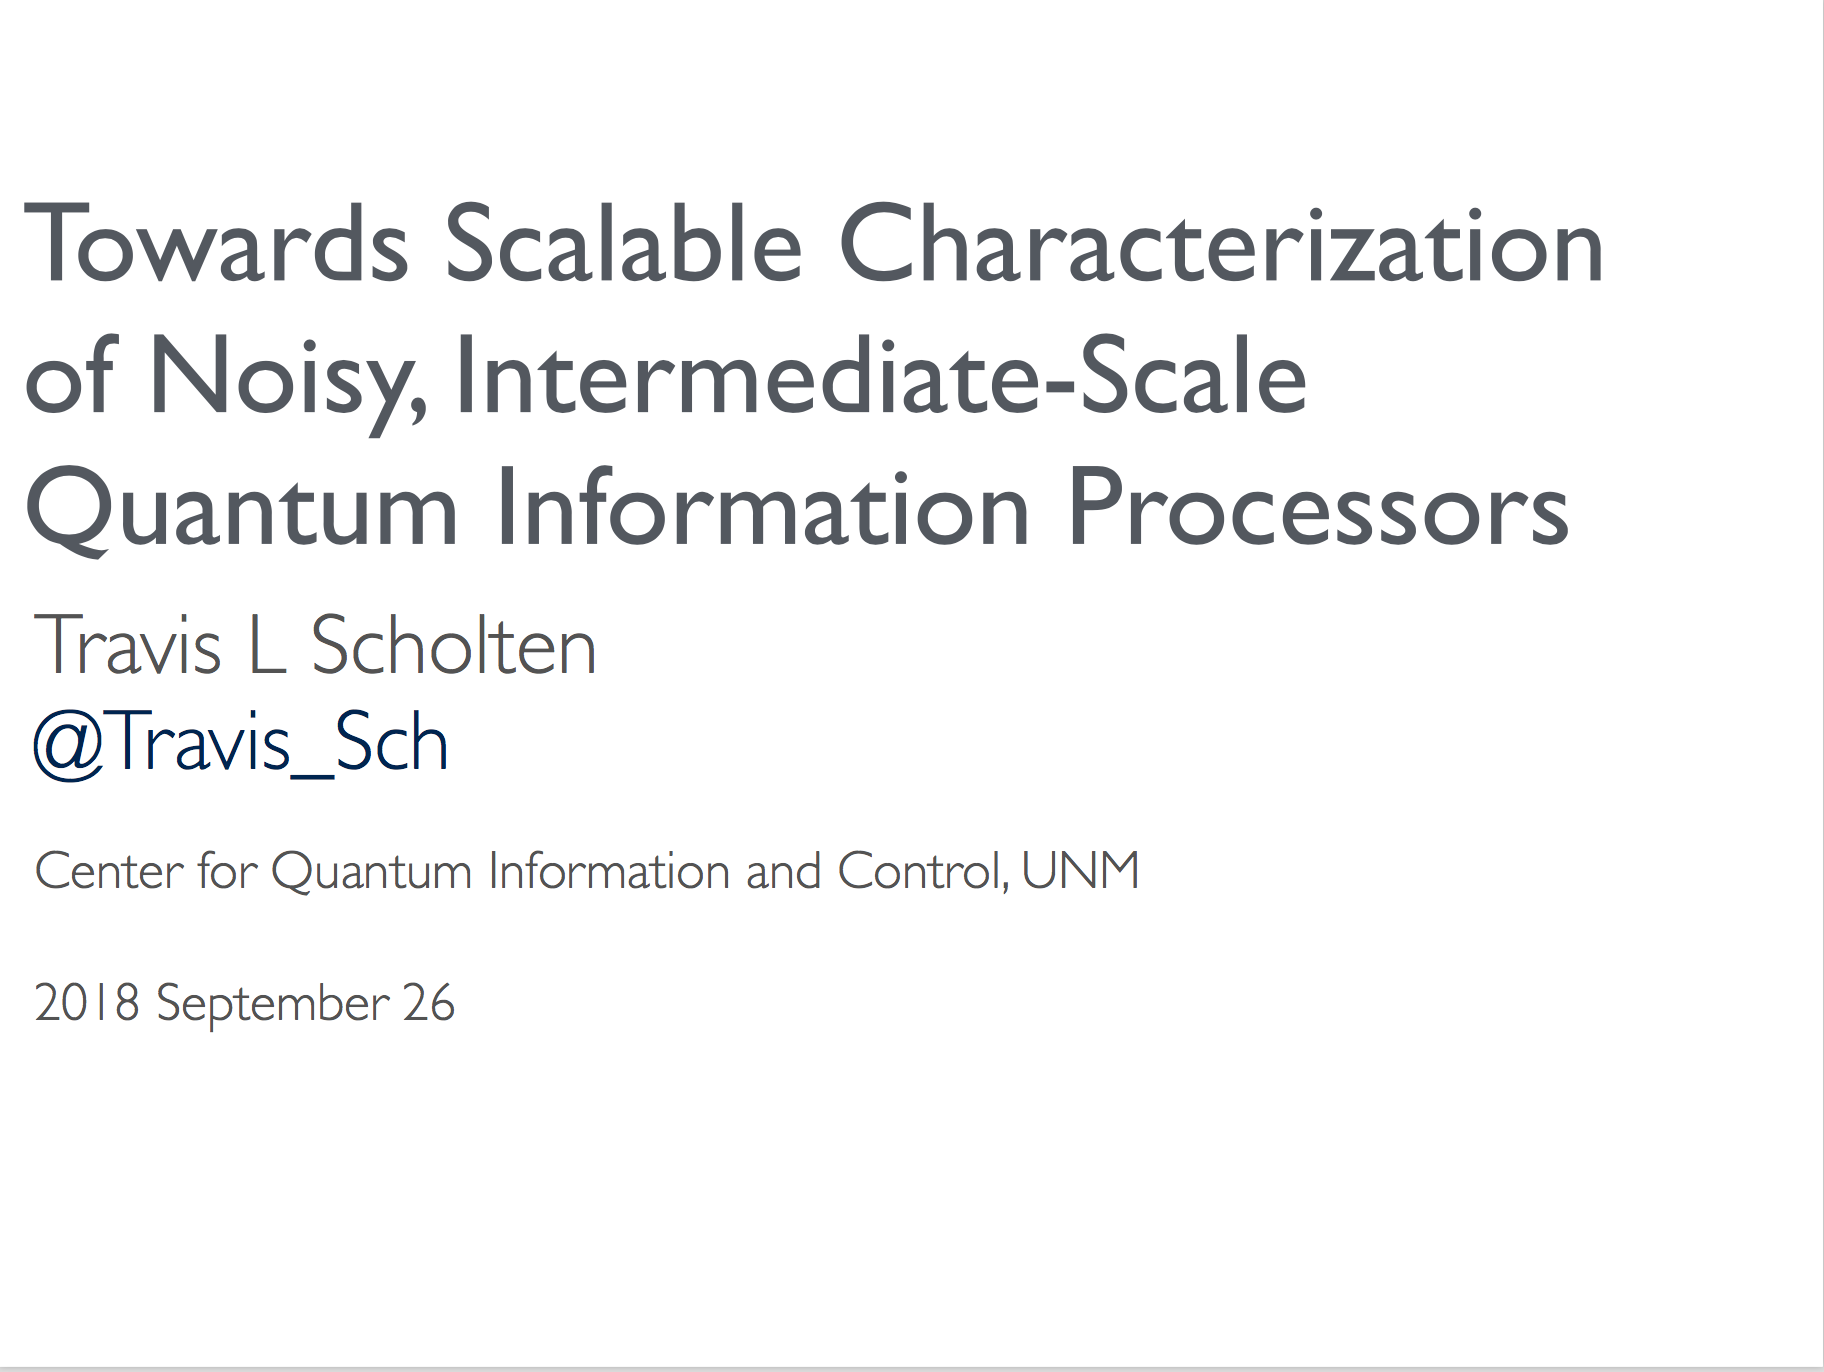 Towards Scalable Characterization of Noisy, Intermediate-Scale Quantum Information Processors